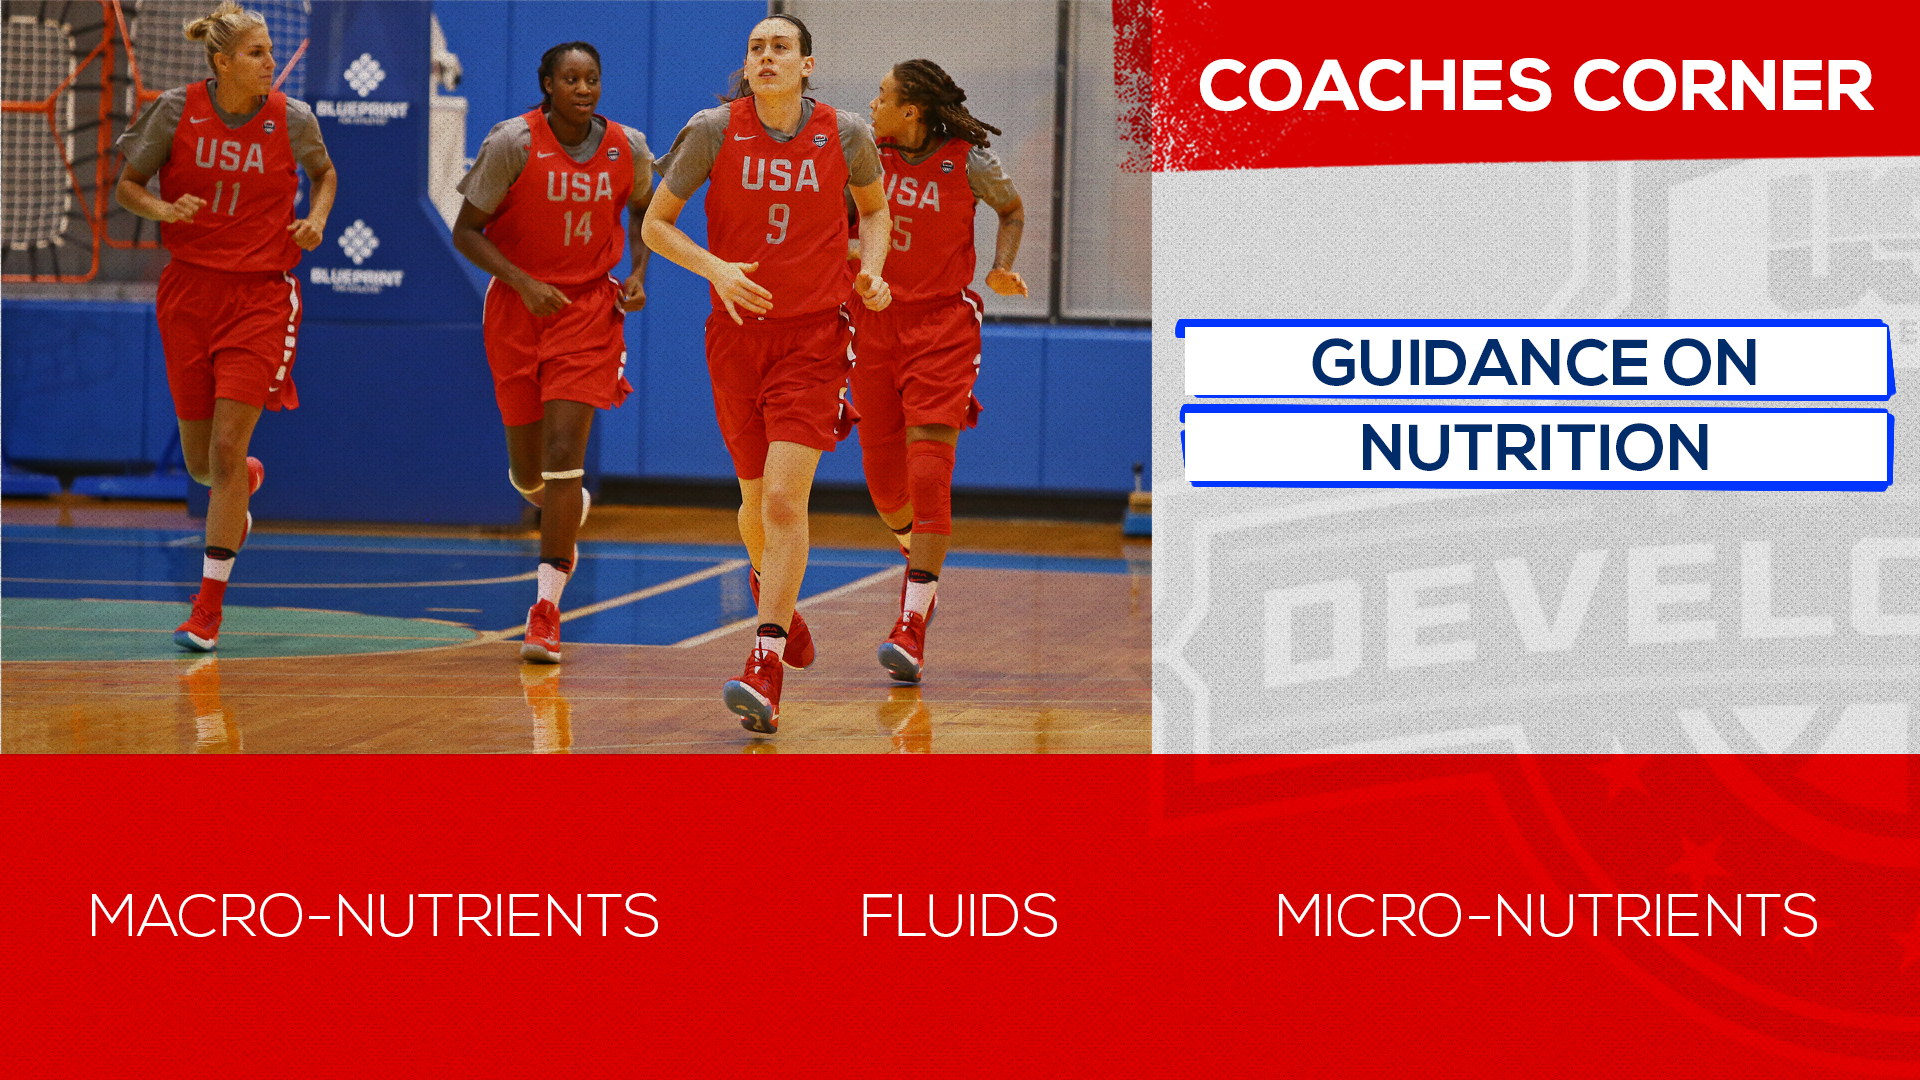 Coaches Corner: Nutrition